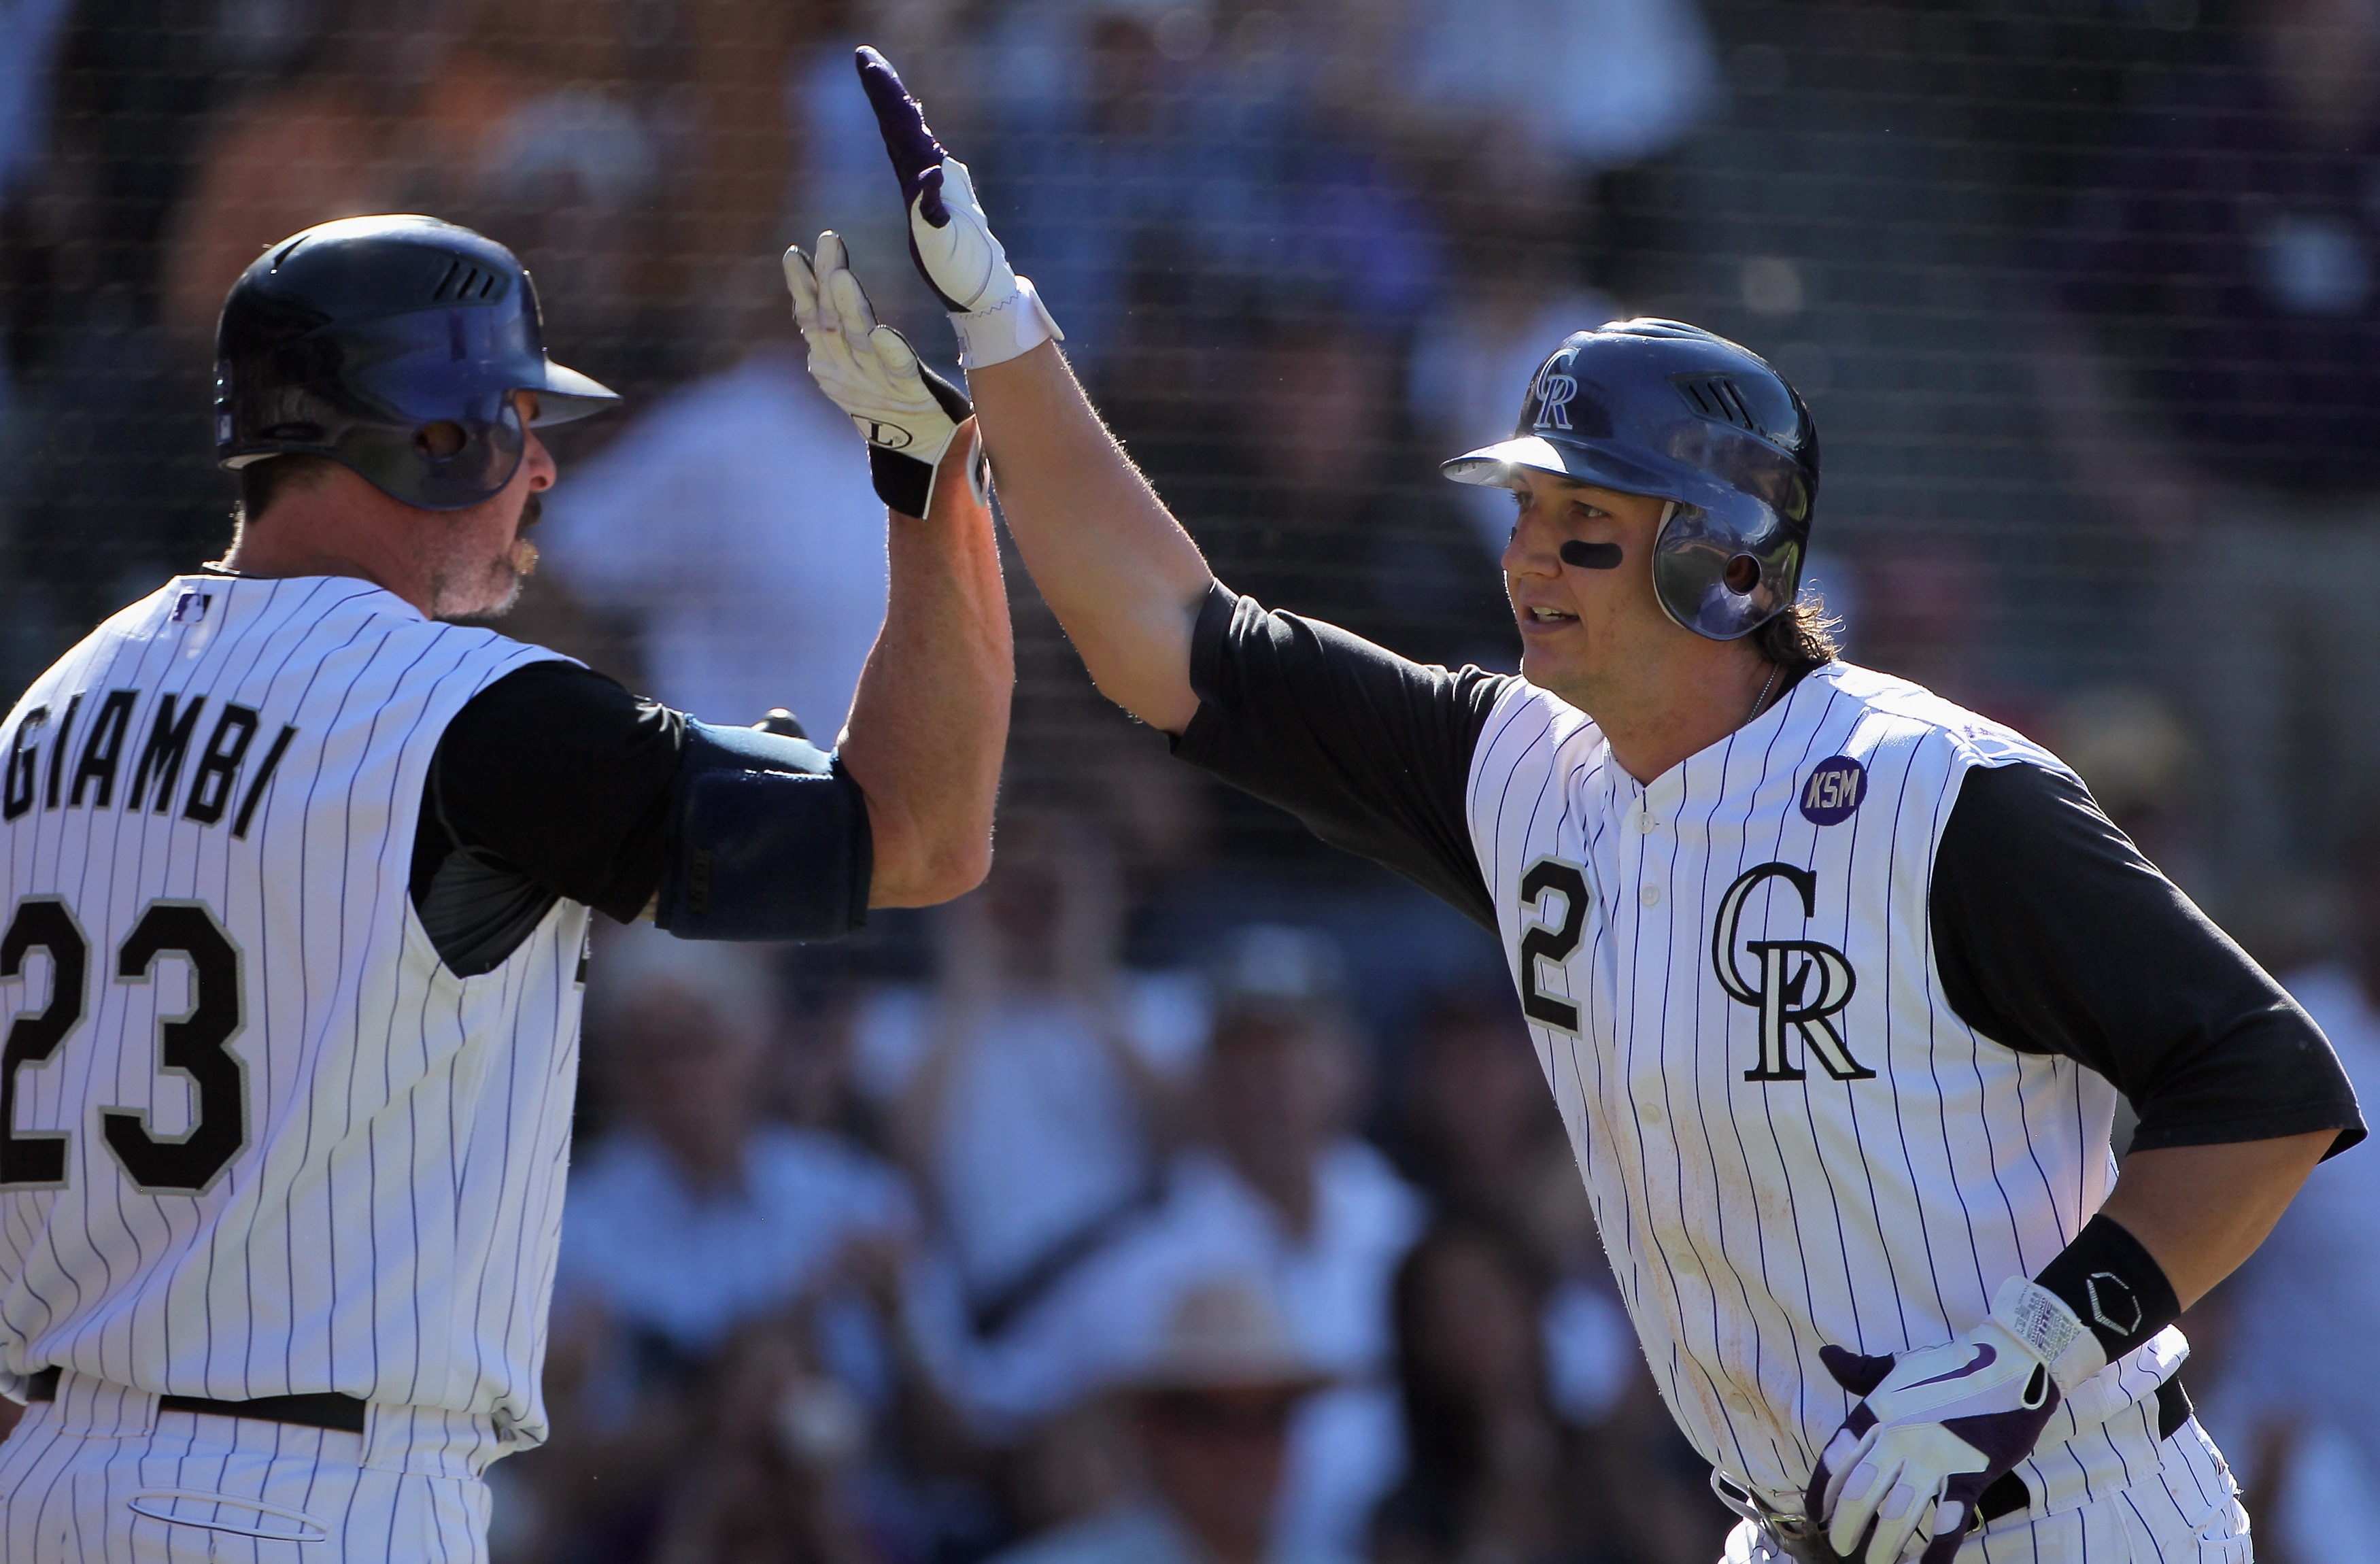 DENVER - SEPTEMBER 09:  Troy Tulowitzki #2 of the Colorado Rockies celebrates his eighth inning homerun off of pitcher Nick Masset of the Cincinnati Reds with Jason Giambi #23 at Coors Field on September 9, 2010 in Denver, Colorado. The Rockies defeated t